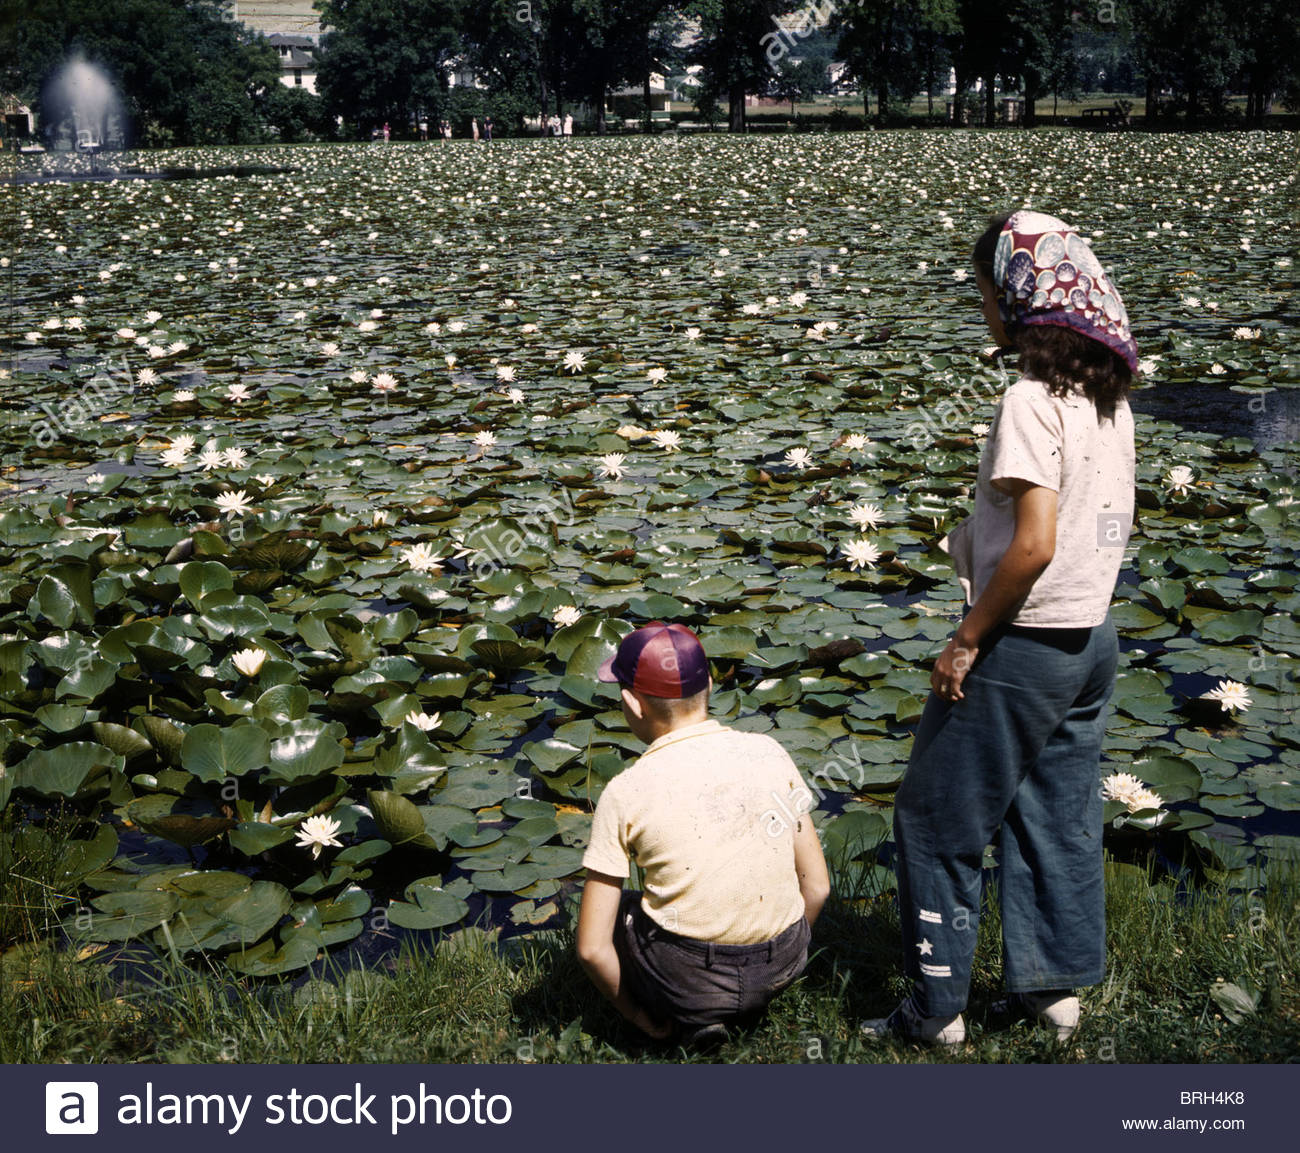 Two people gaze at a lily pond that was once a bicycle track